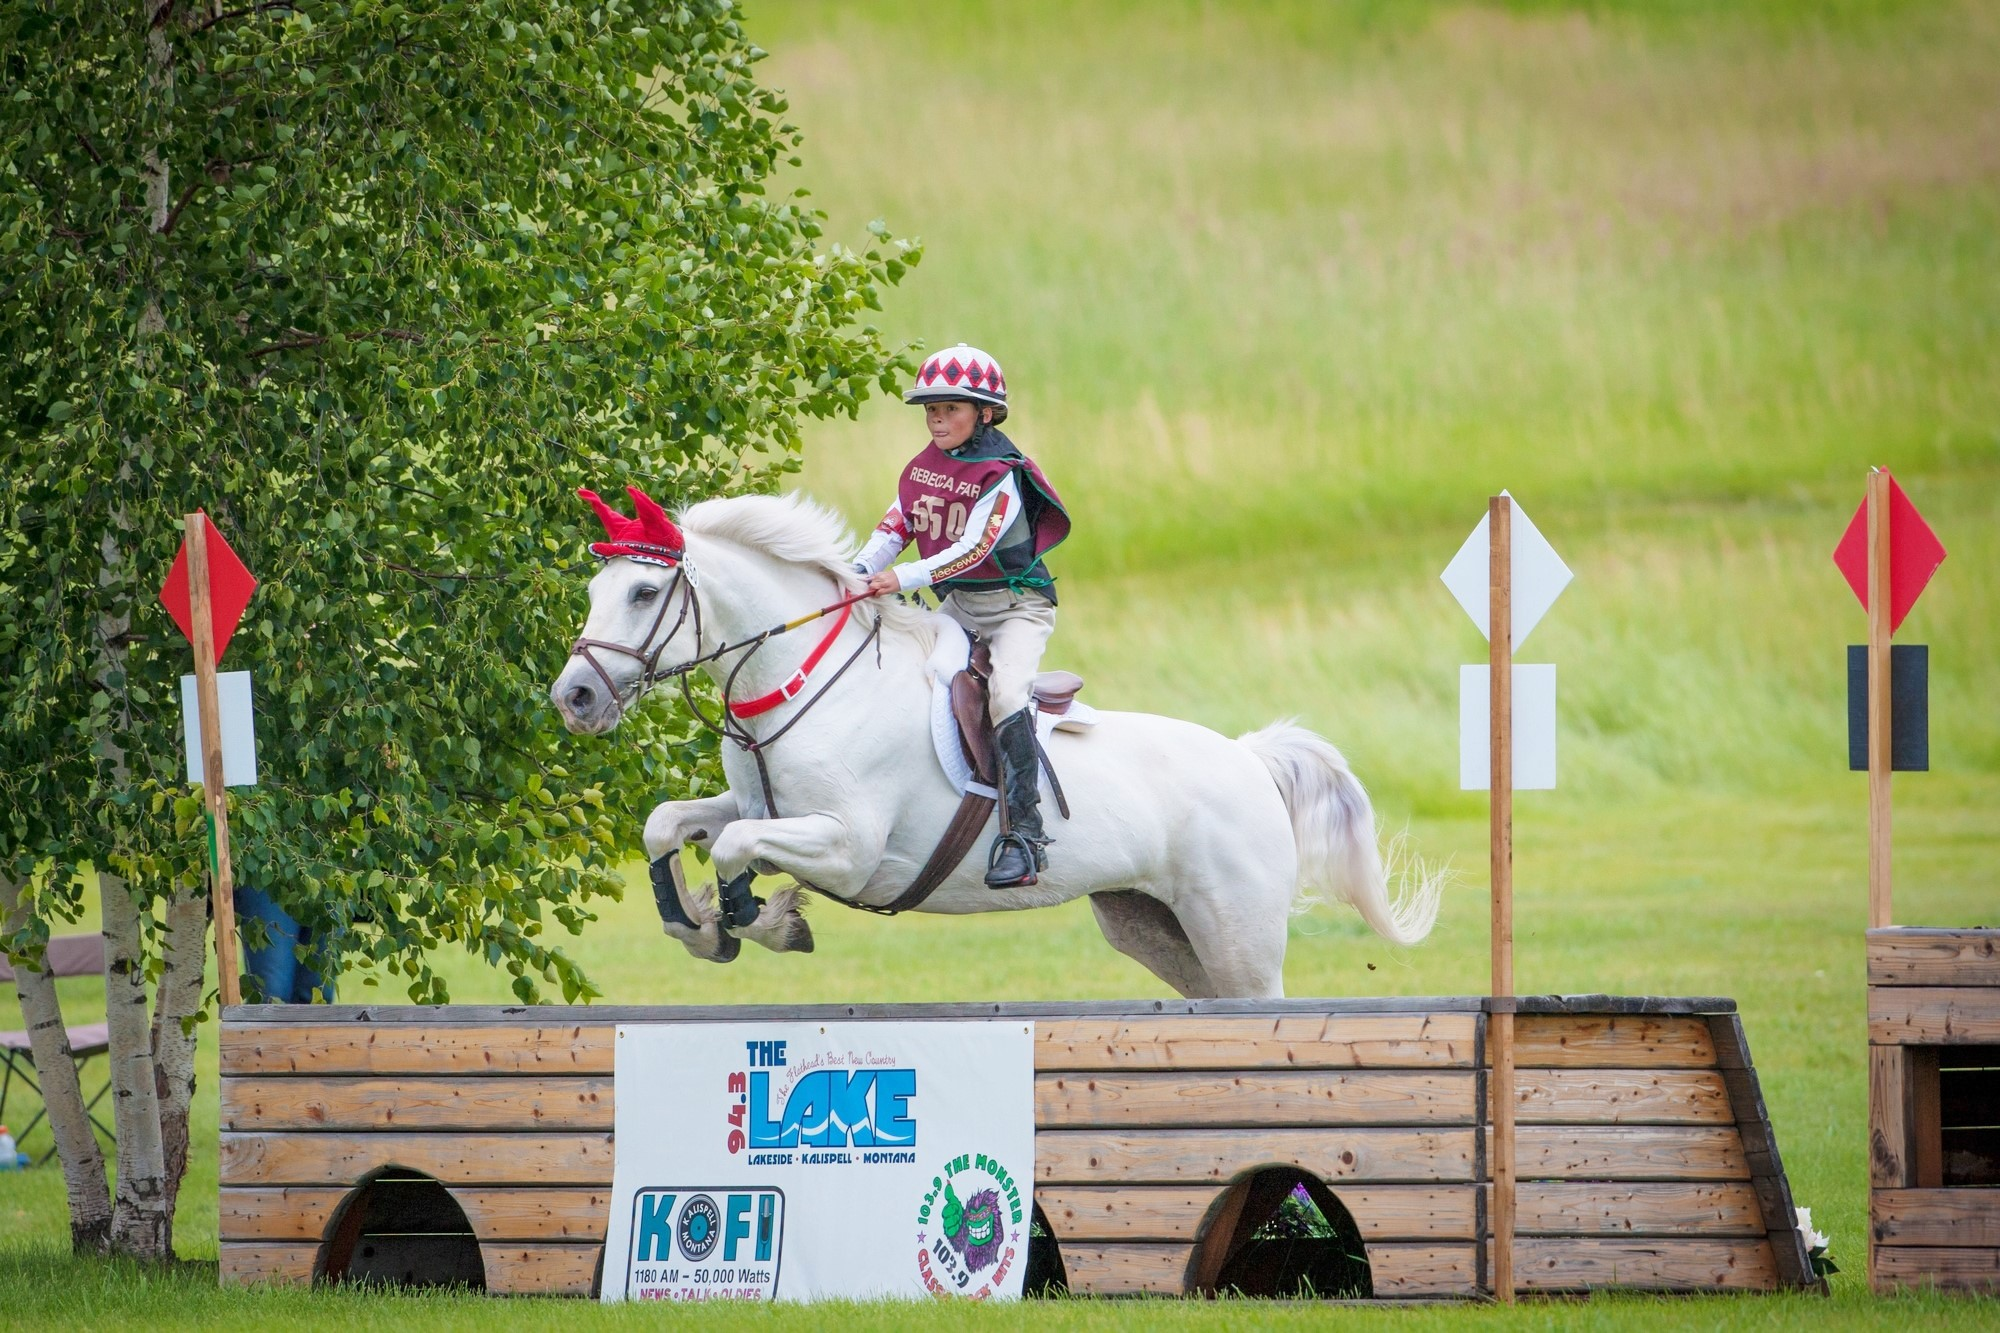 Taylor McFall and Killbarry Prince on their way to a clear round on the cross-country course in the Novice Classic Three-day at the Event at Rebecca Farm. (Photo - Stockimageservices.com.)